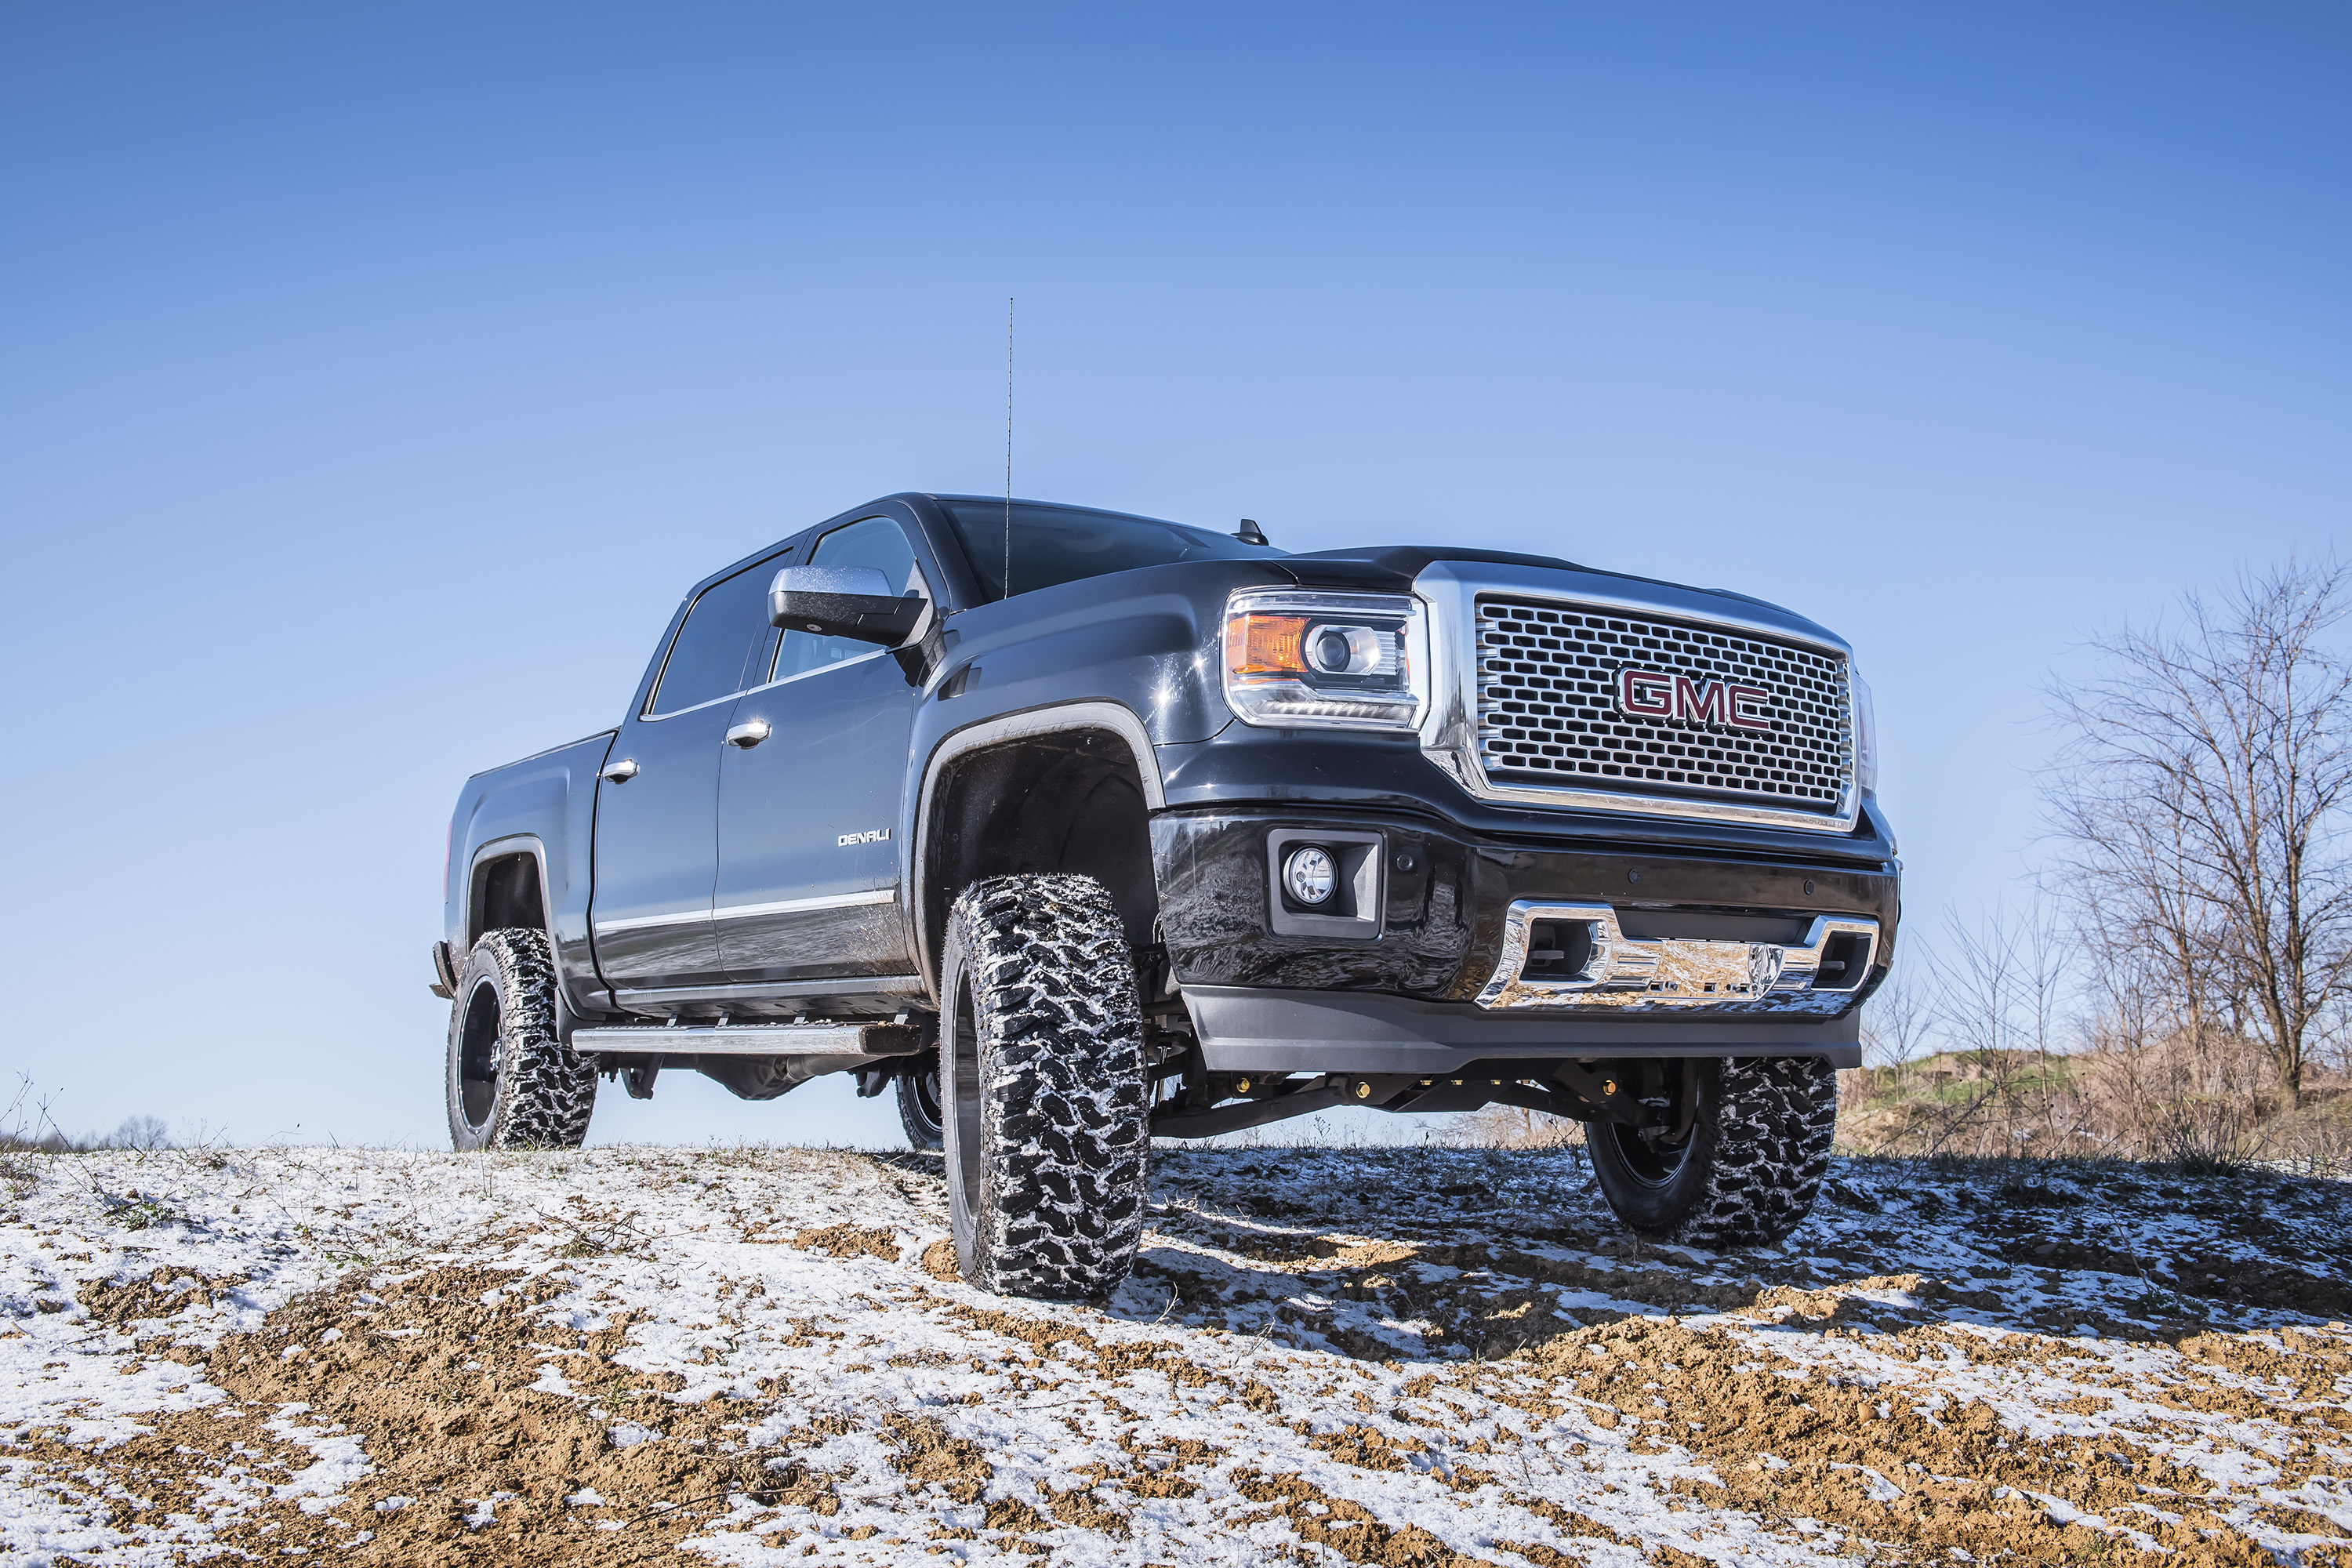 Magneride GMC Lift Kits by BDS Suspension